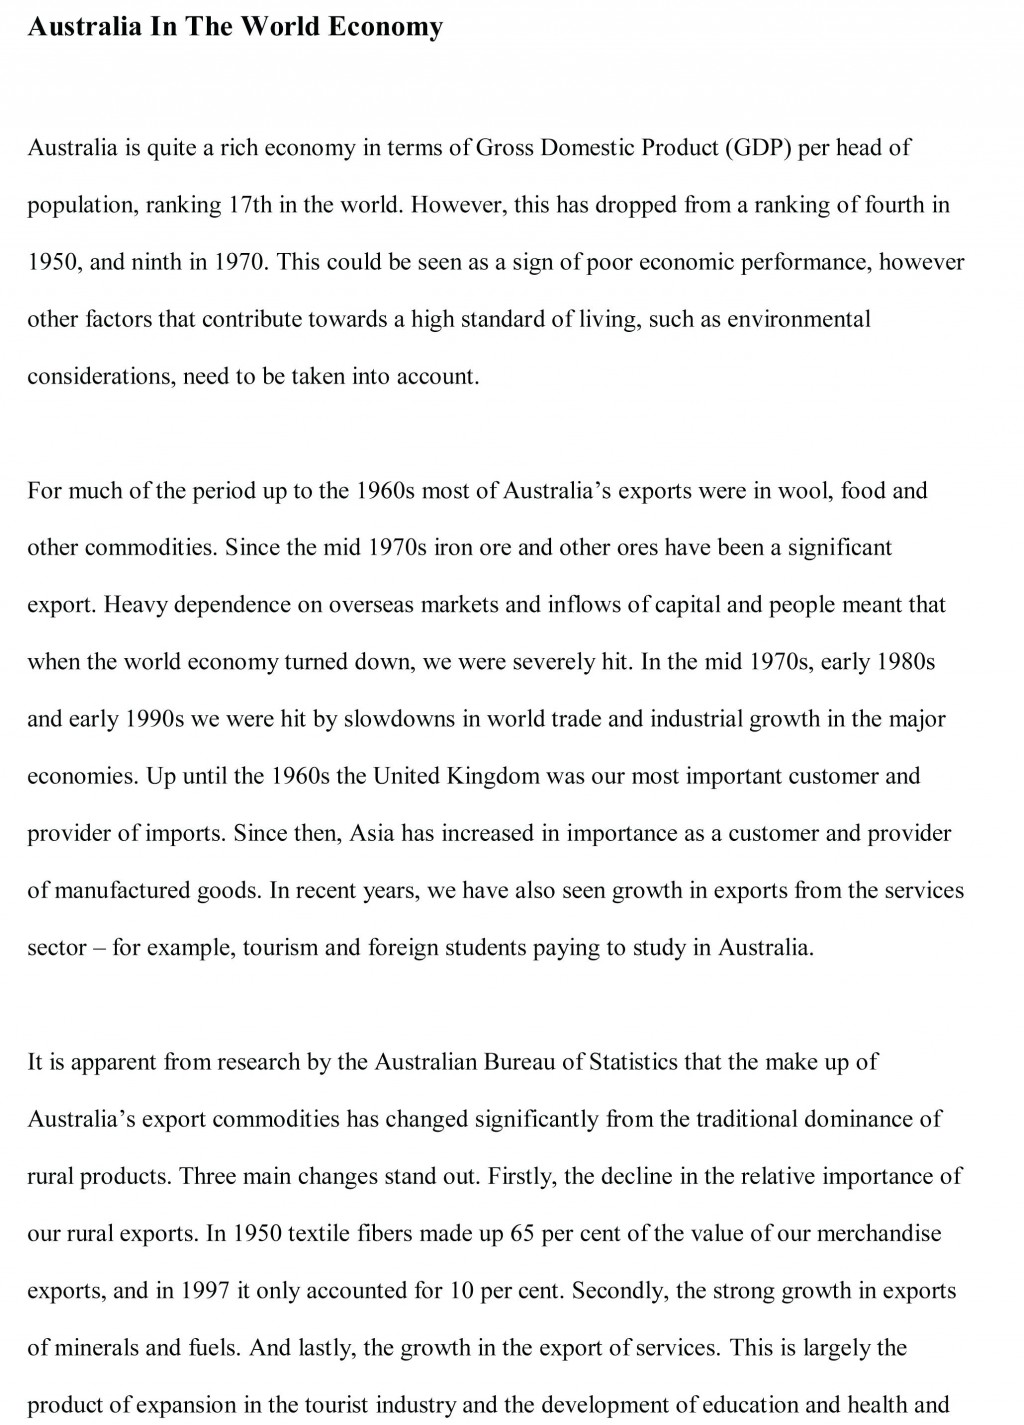 009 Research Paper Political Science Essay Topics Resume Sample Good Indian Bless Striking 2018 Large